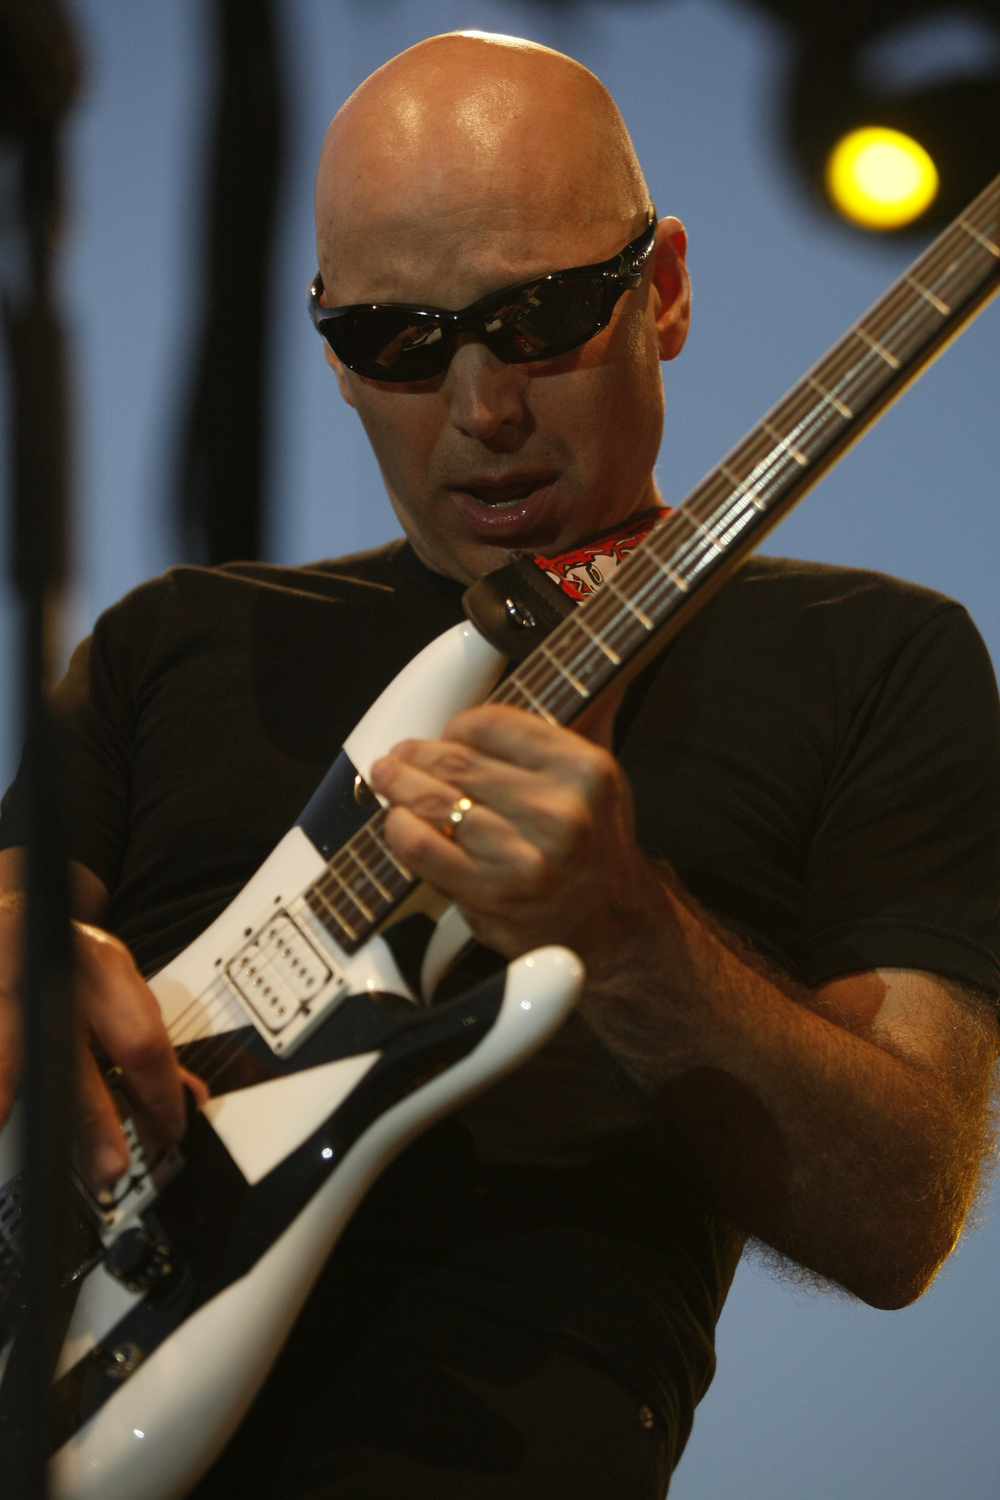 Joe Satriani performing live